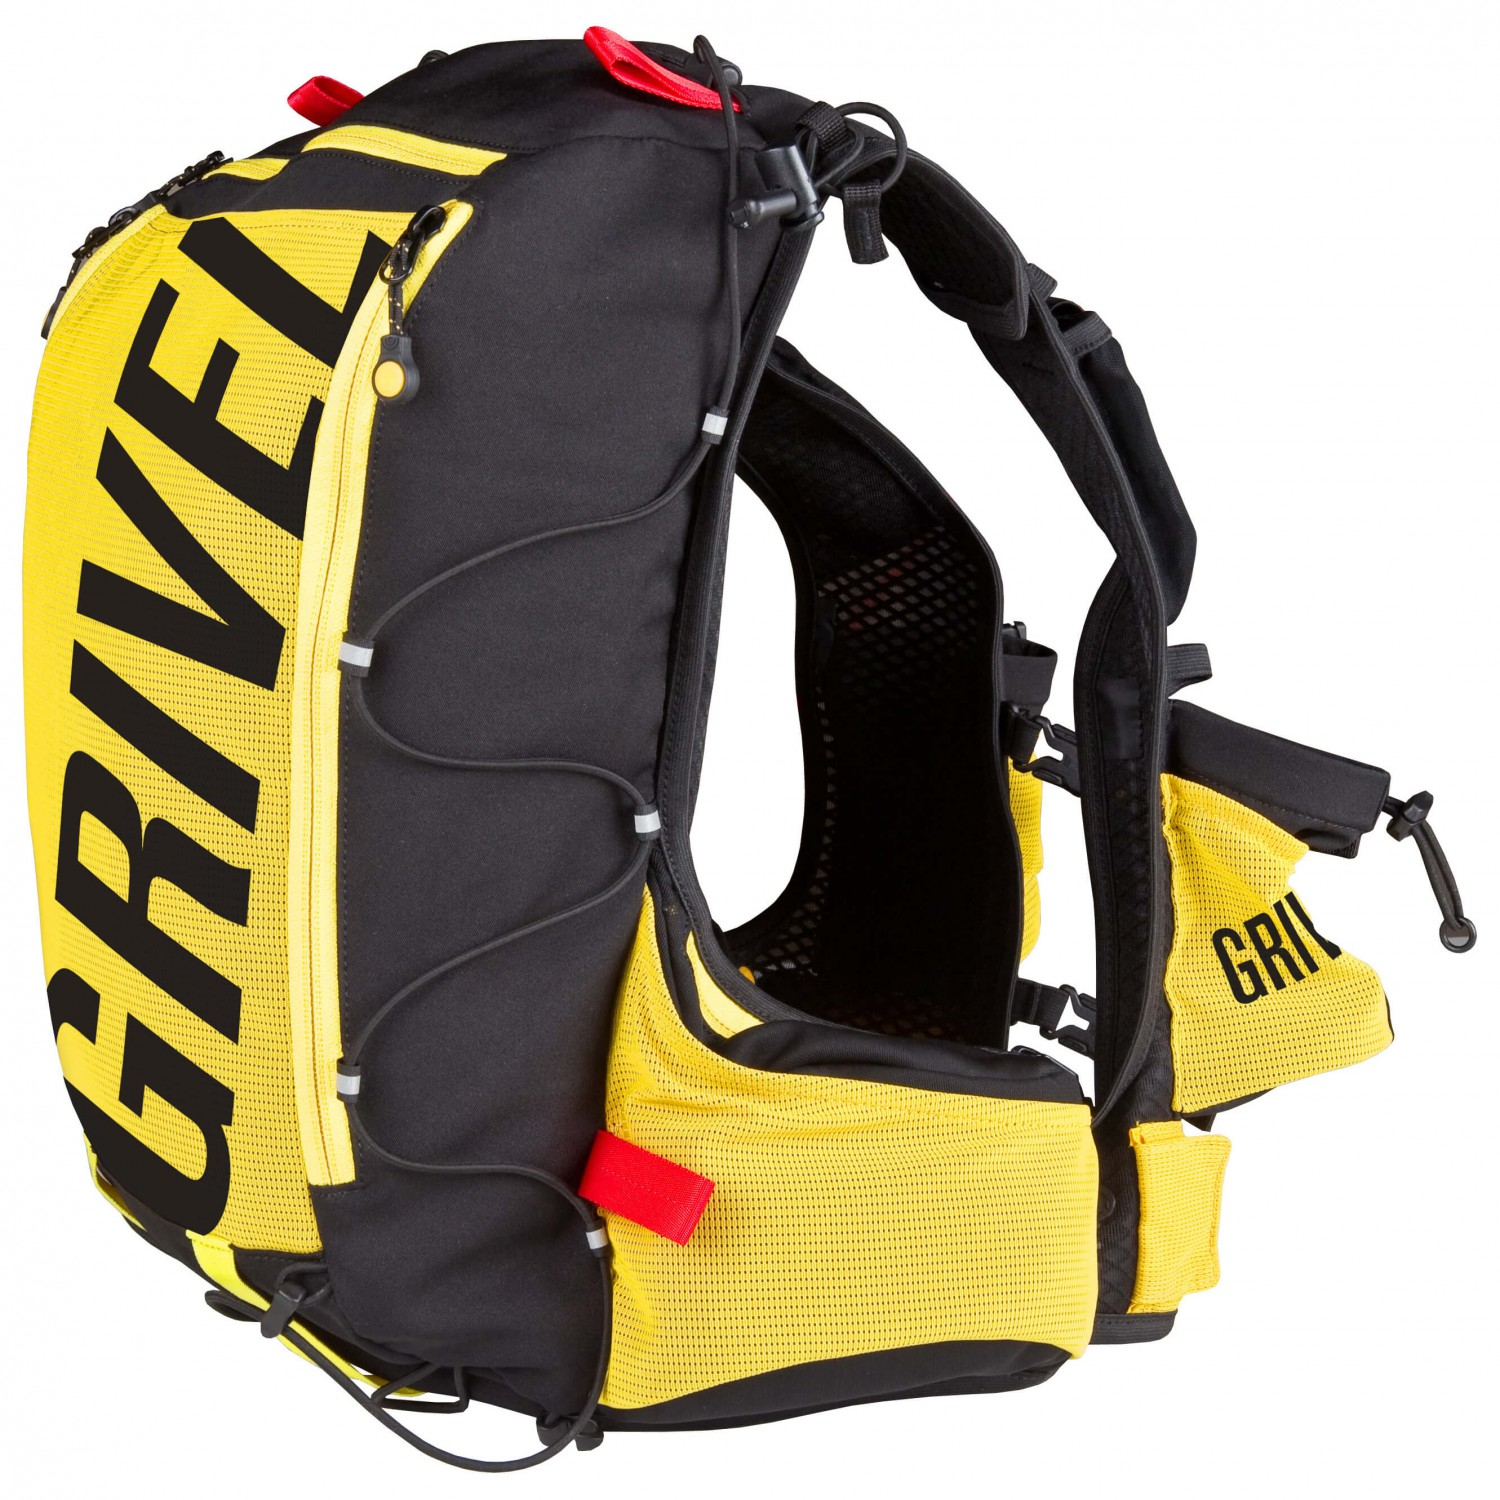 Grivel Backpack Mountain Runner 20 Free Uk Delivery